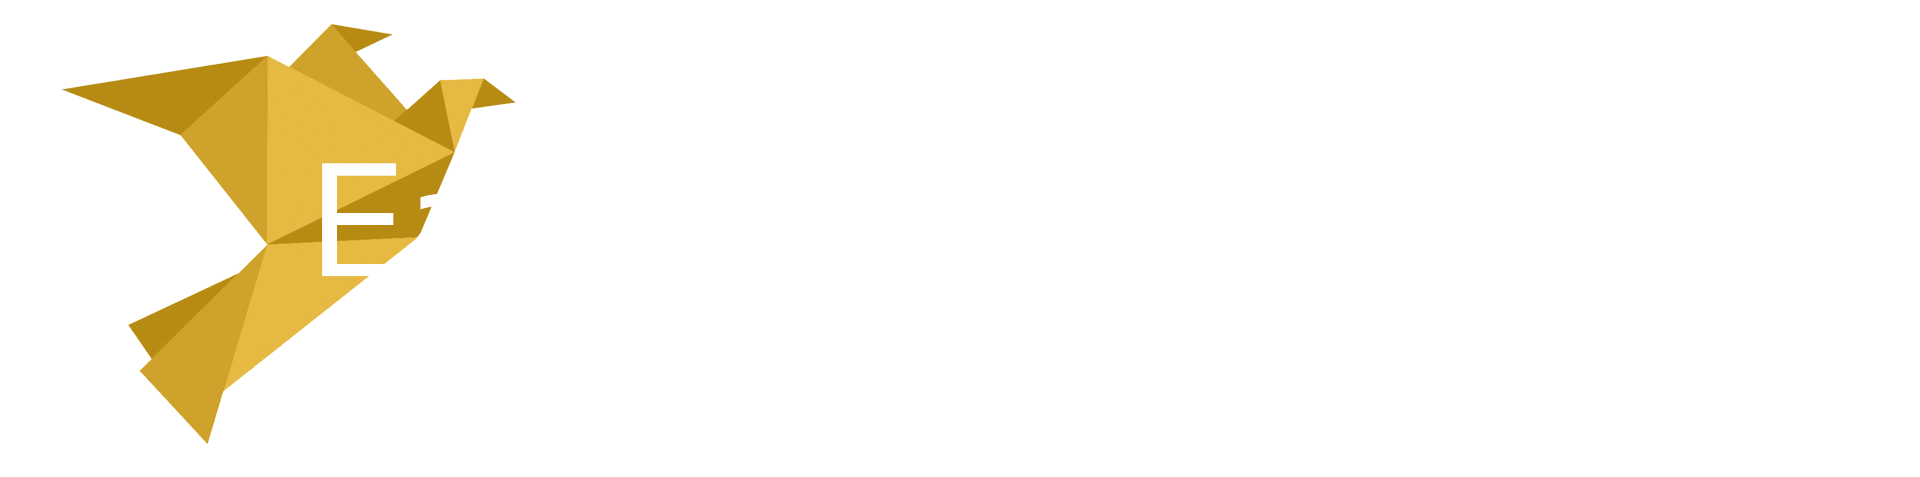 Easy World Airlines